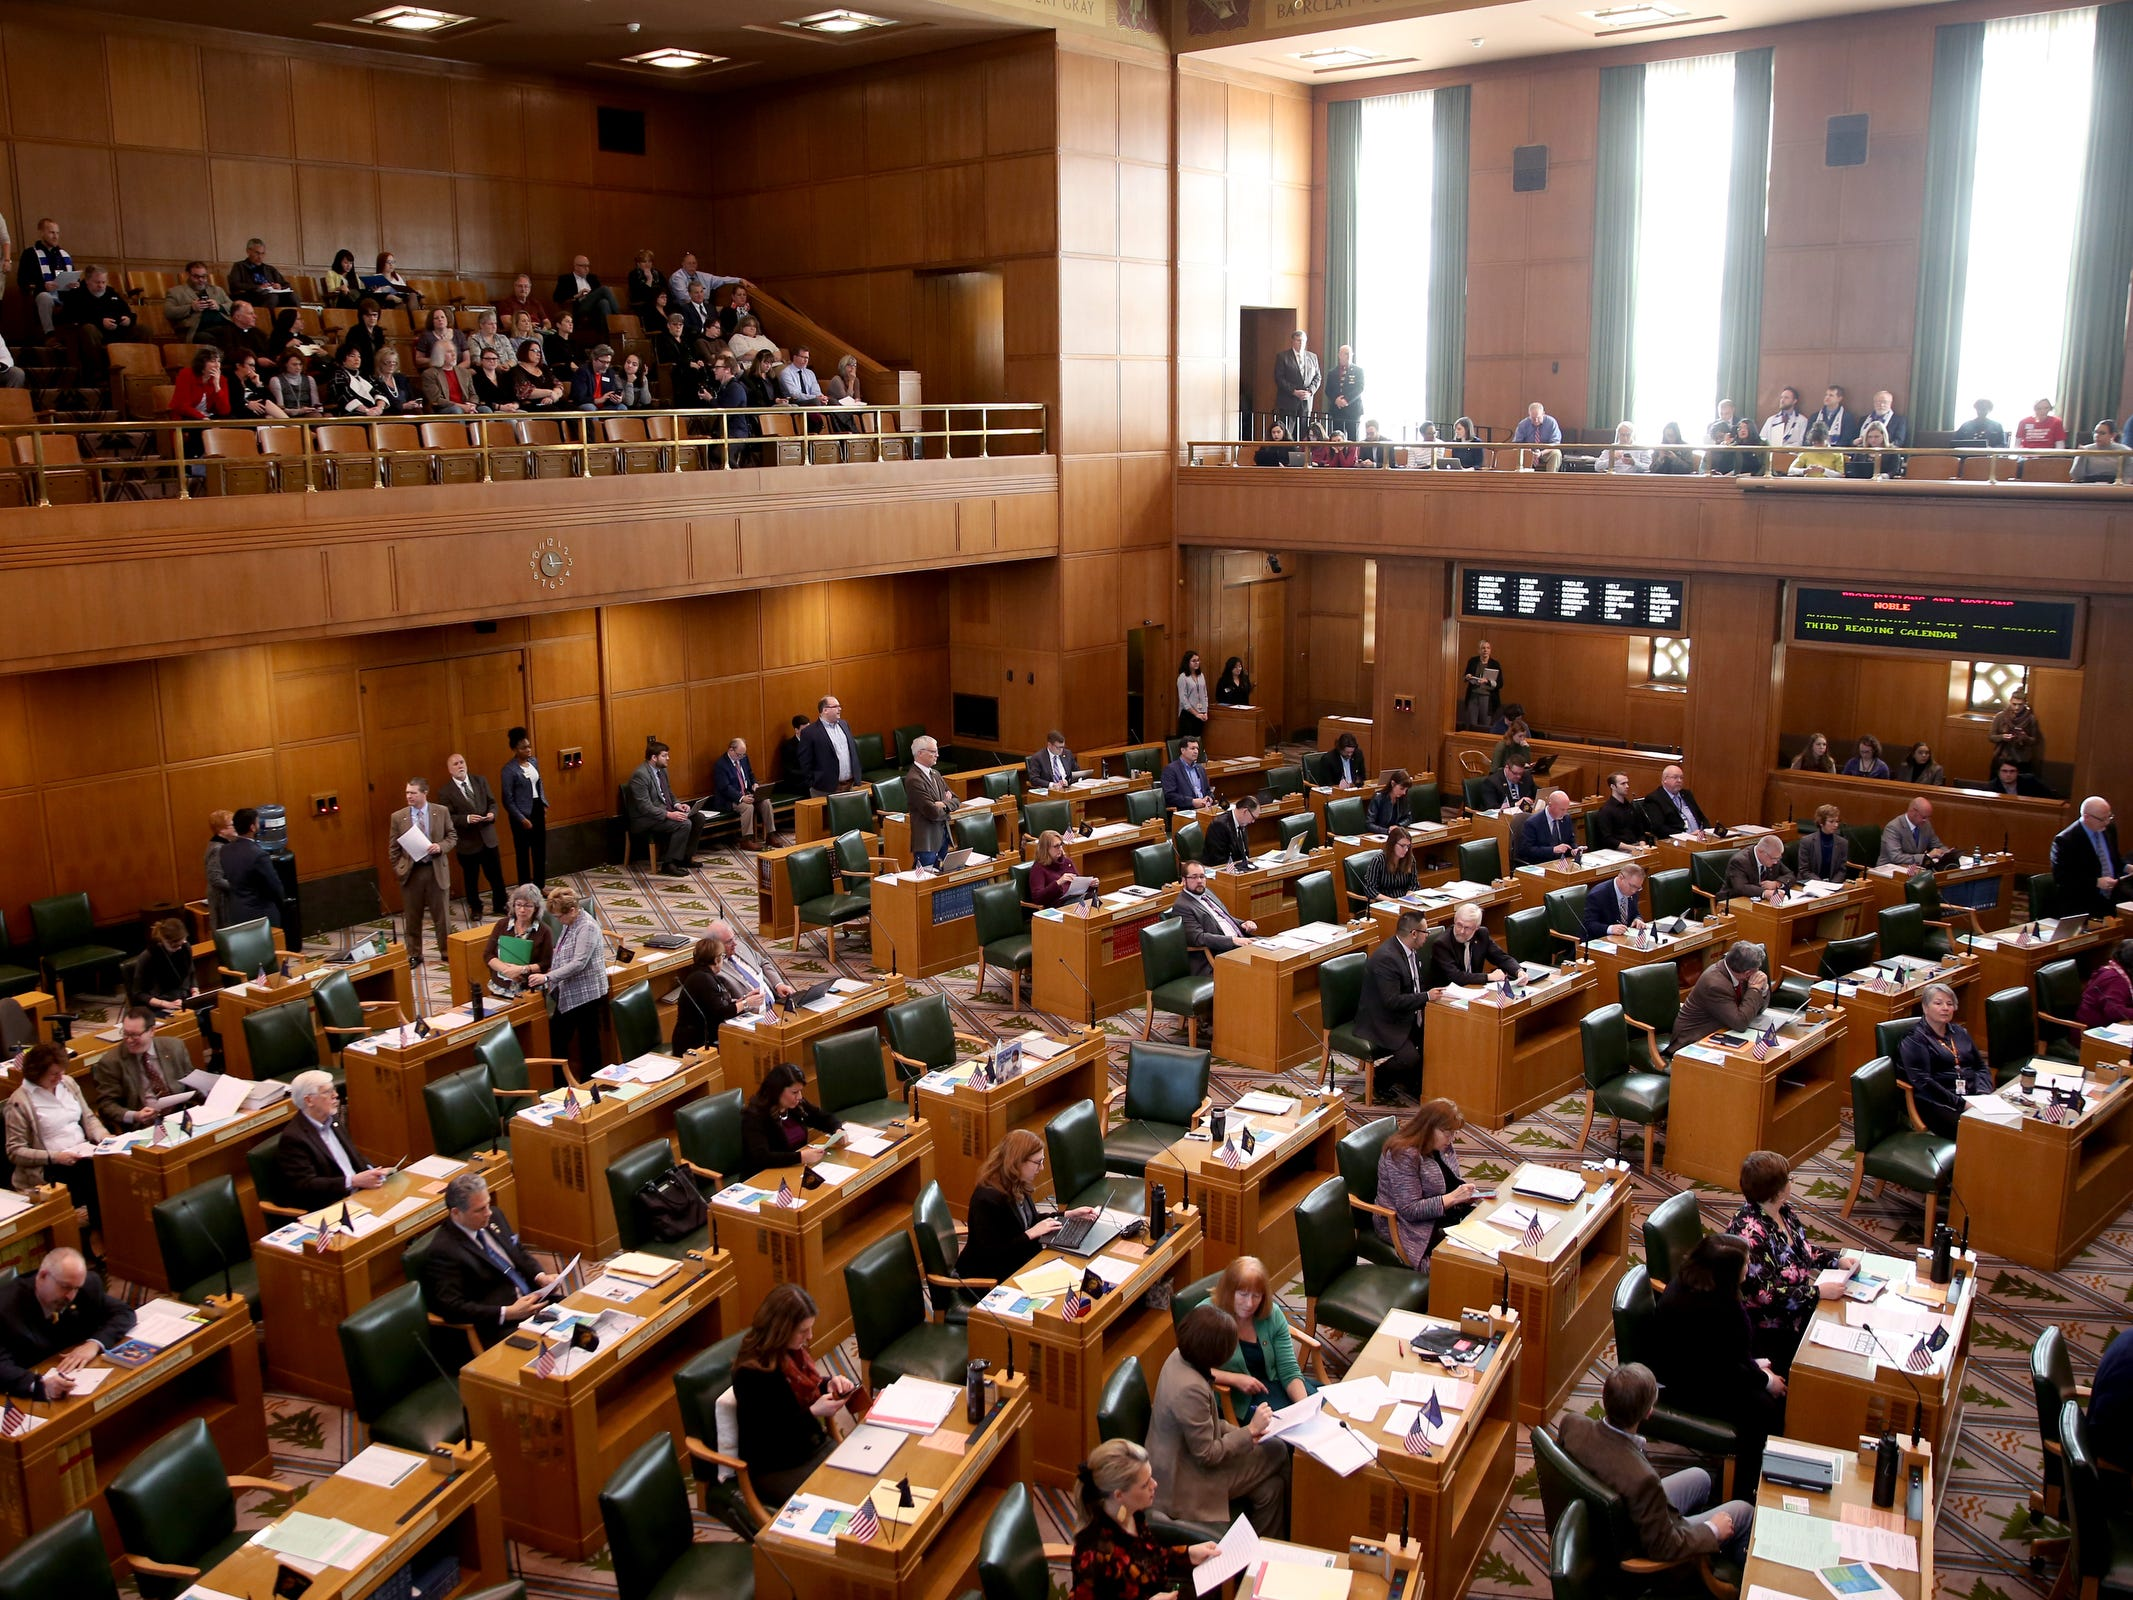 The House of Representatives prepares to vote on Senate Bill 608 at the Oregon State Capitol in Salem on Tuesday, Feb. 26, 2019. The House approved the rent control bill to end no-cause evictions for many tenants and cap rent increases across the state.